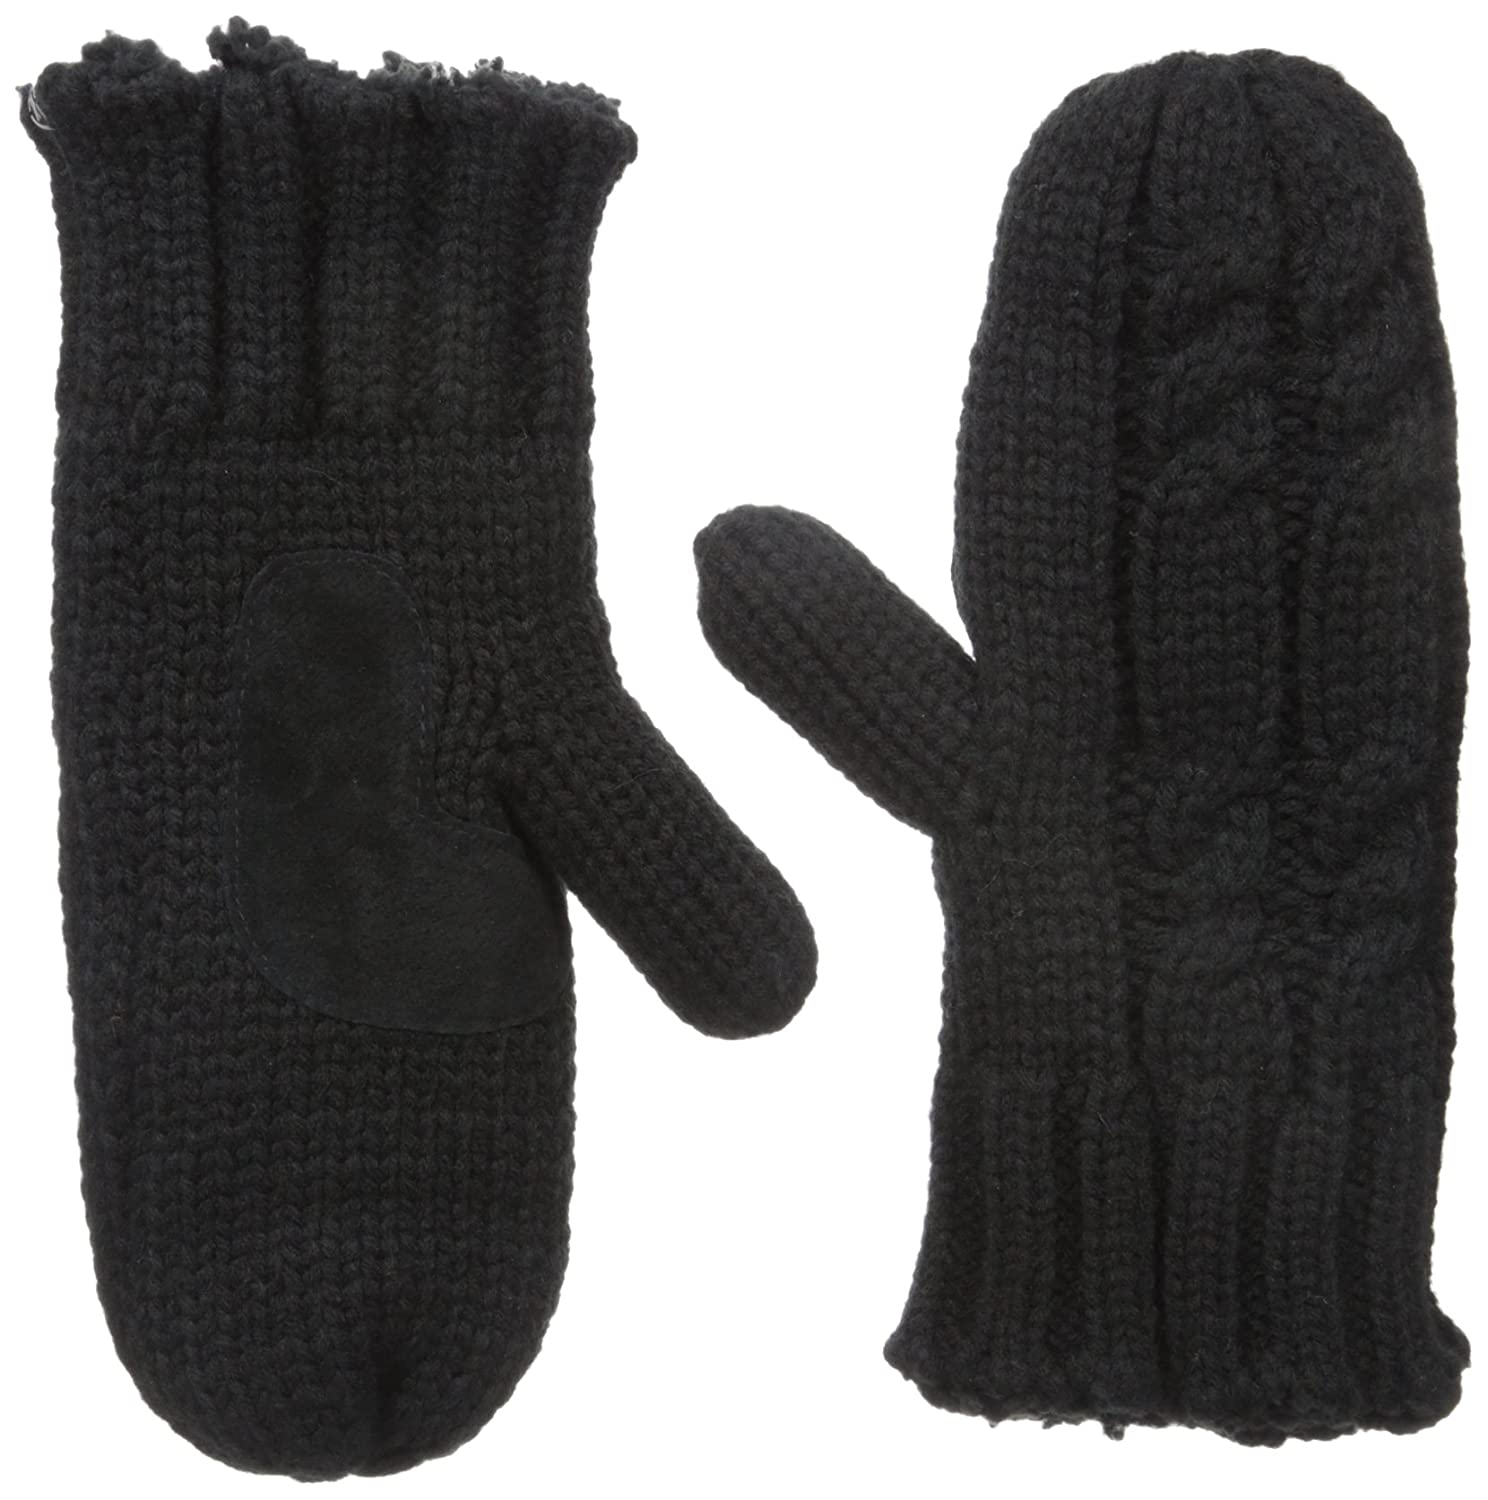 Isotoner Women's Cable Knit Mitten Black One Size 40311